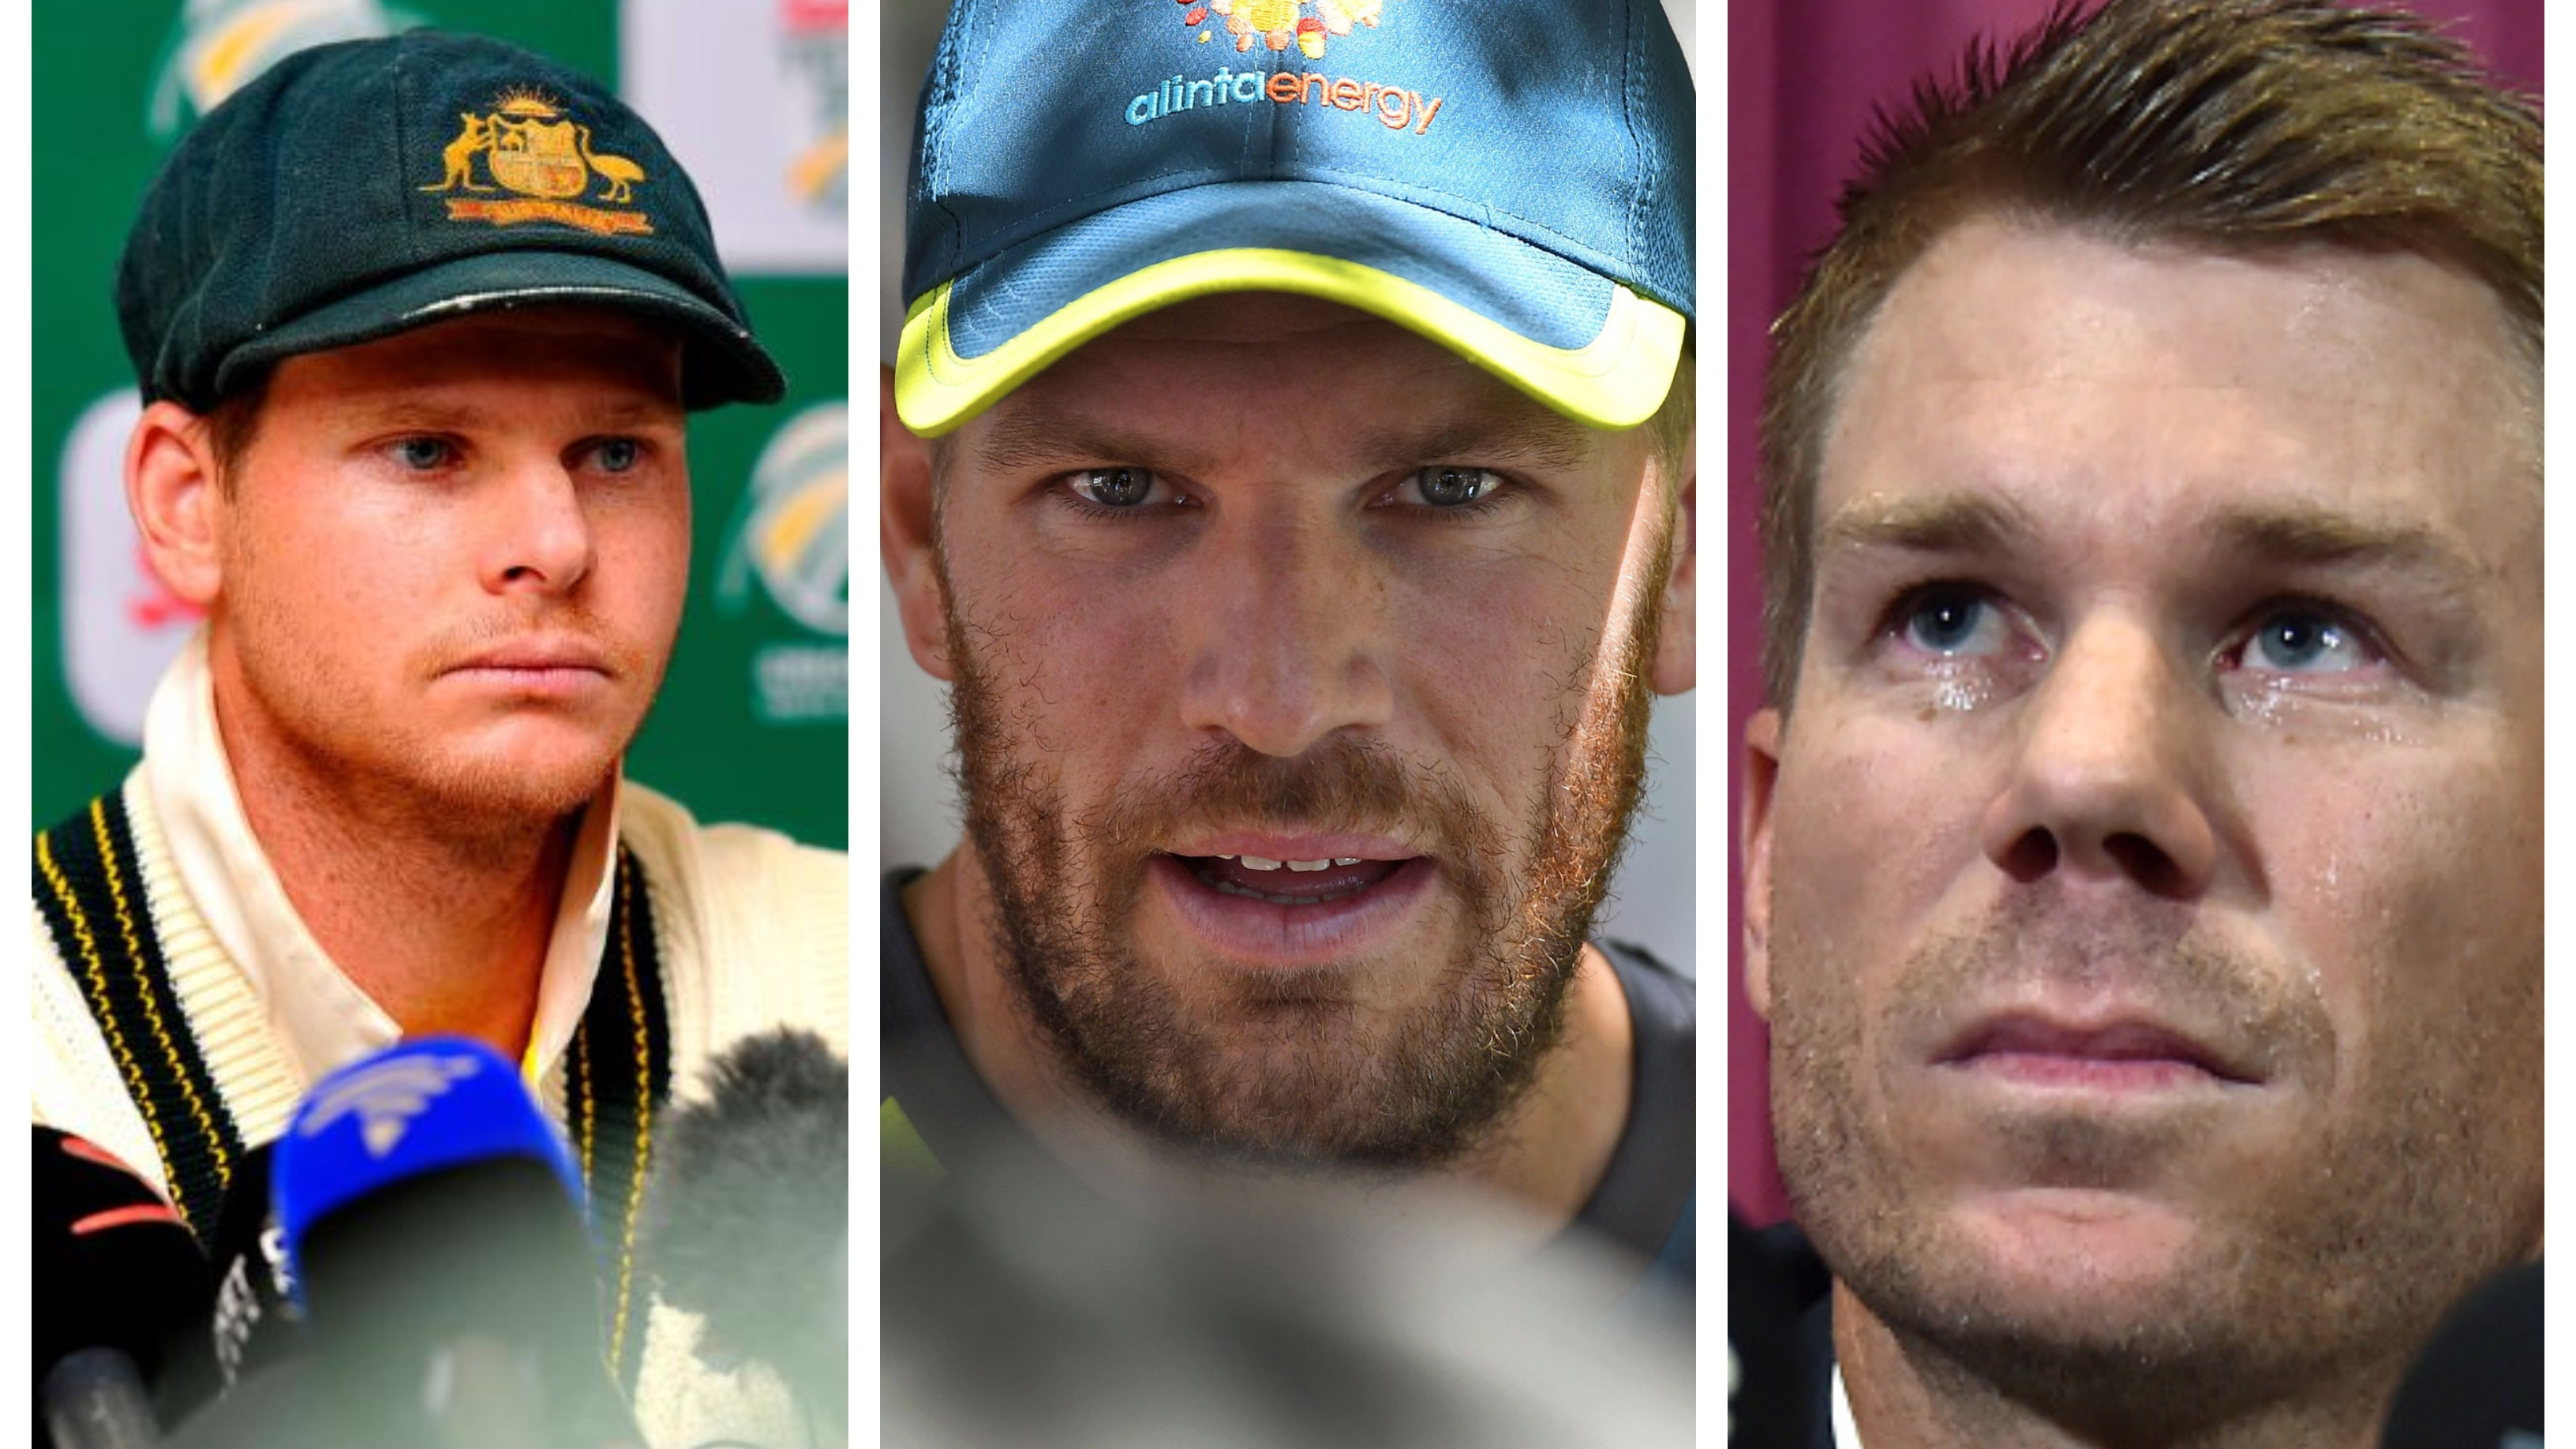 Ball tampering trio will be